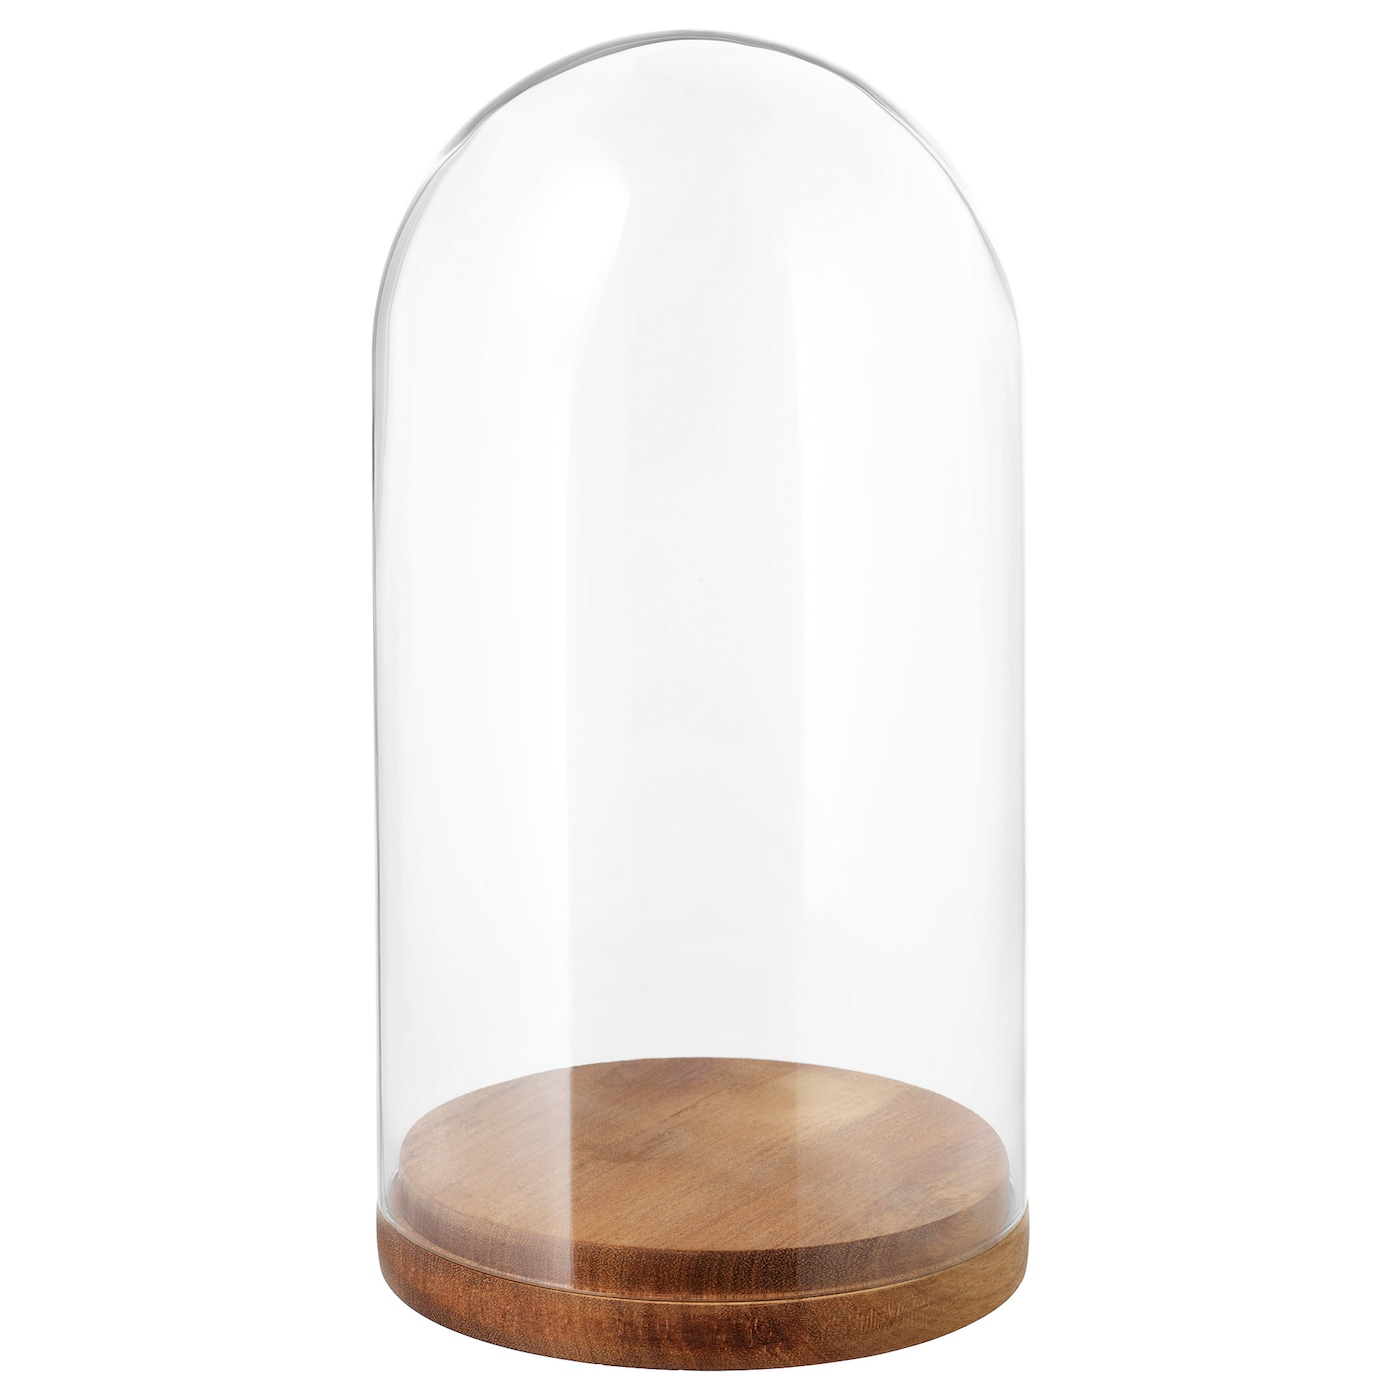 IKEA HÄRLIGA glass dome with base